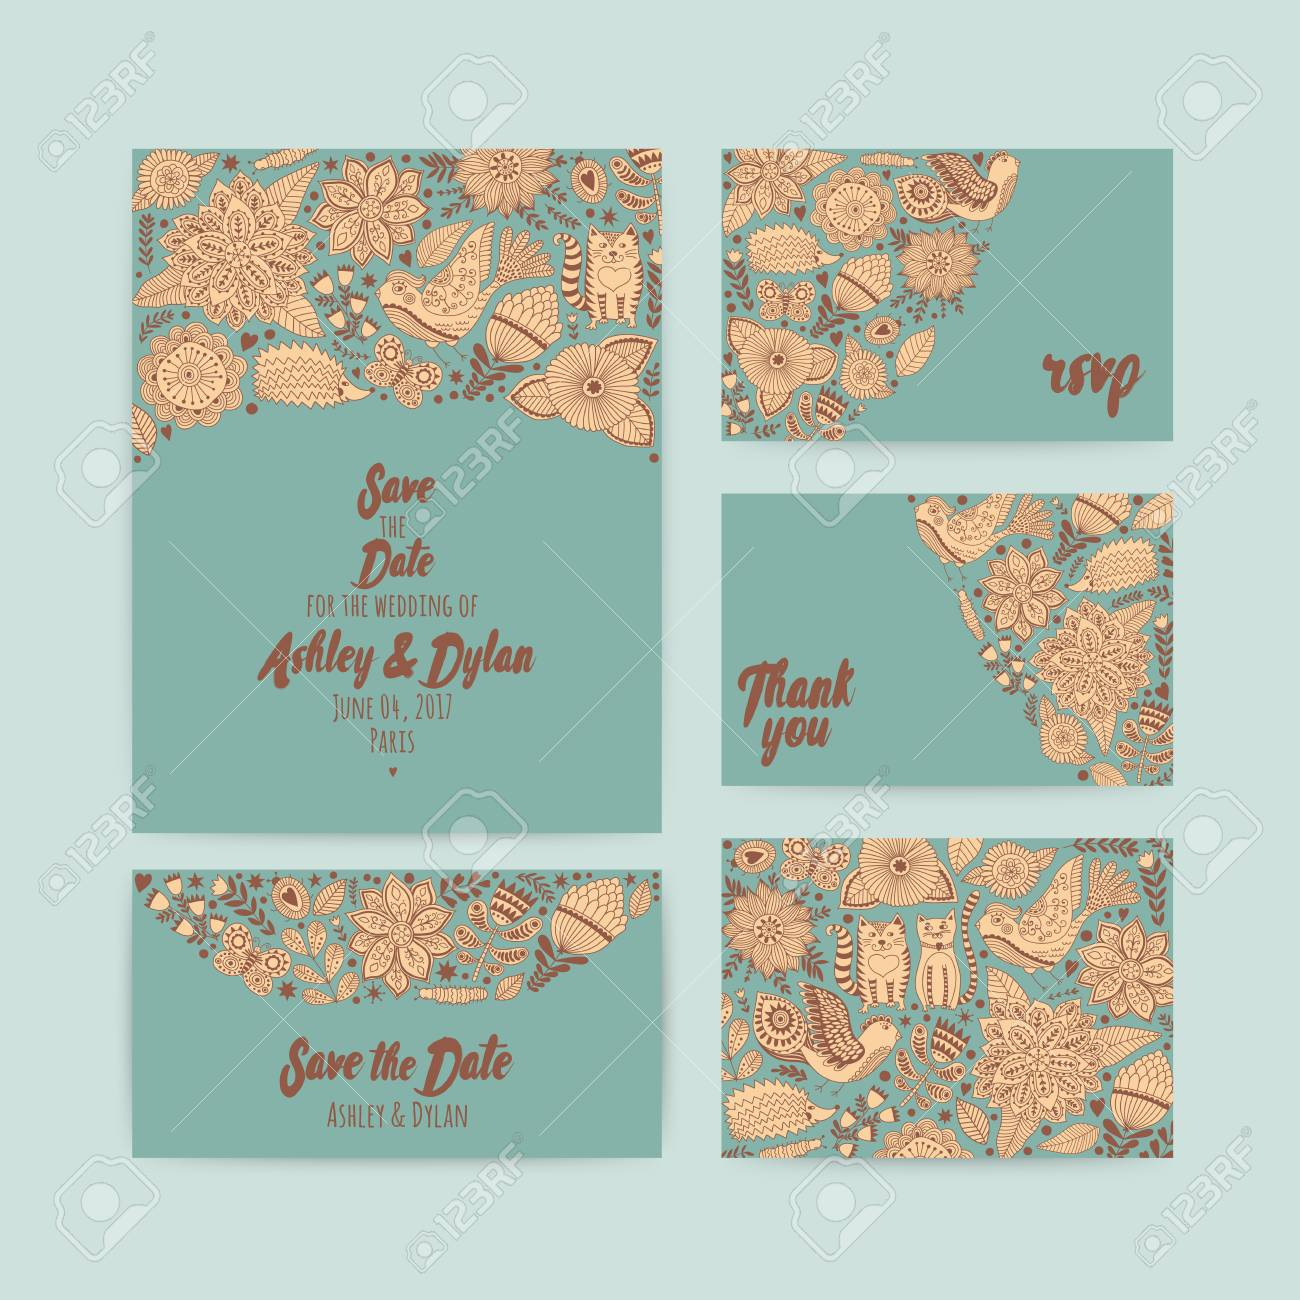 wedding invitation template save the date invitation and envelope